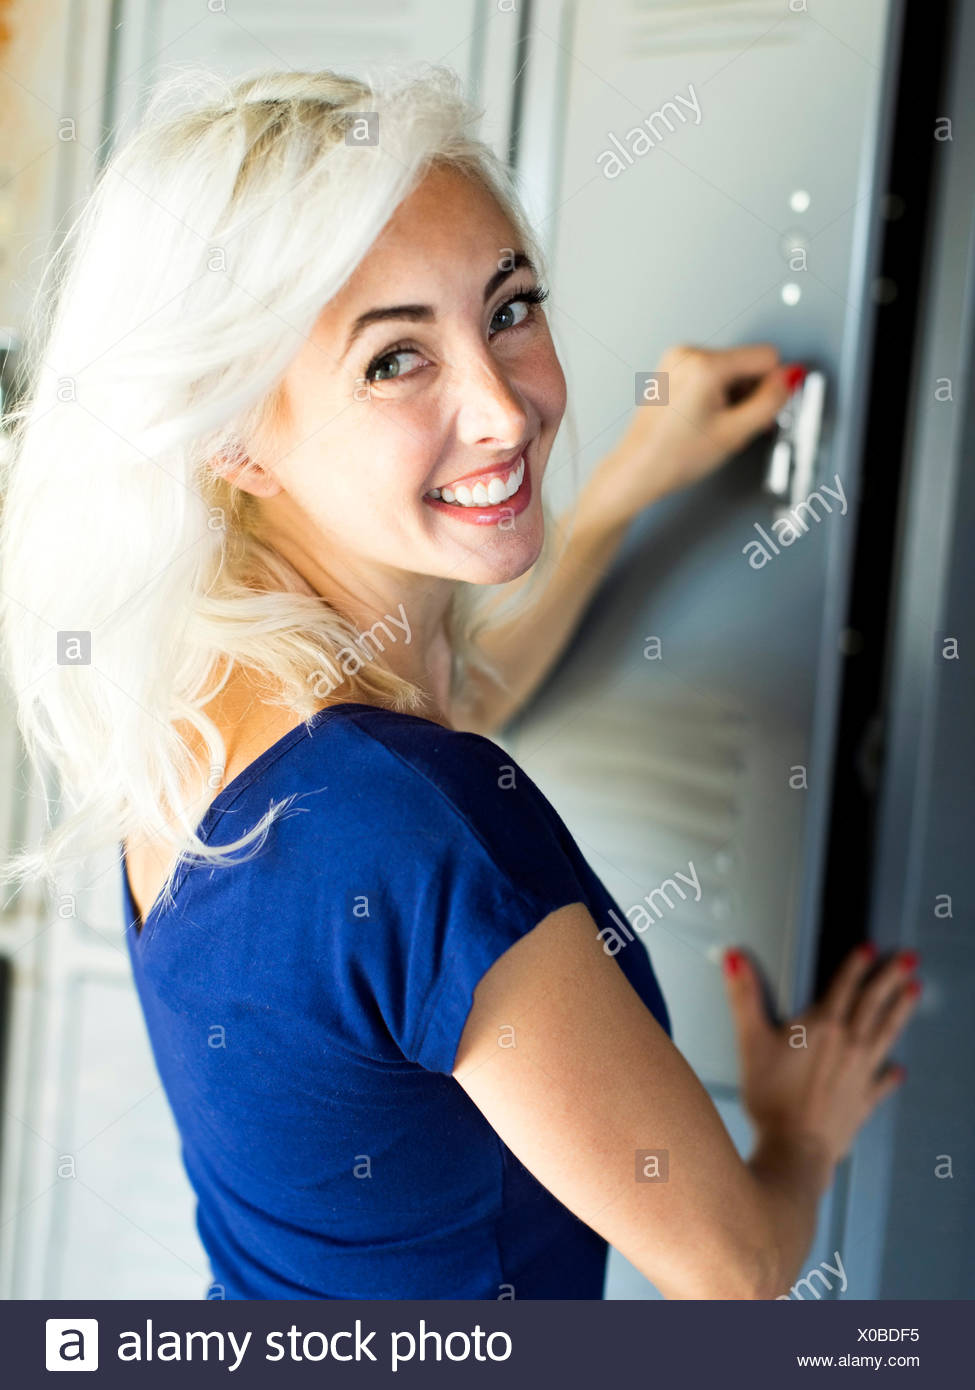 Woman opening locker - Stock Image